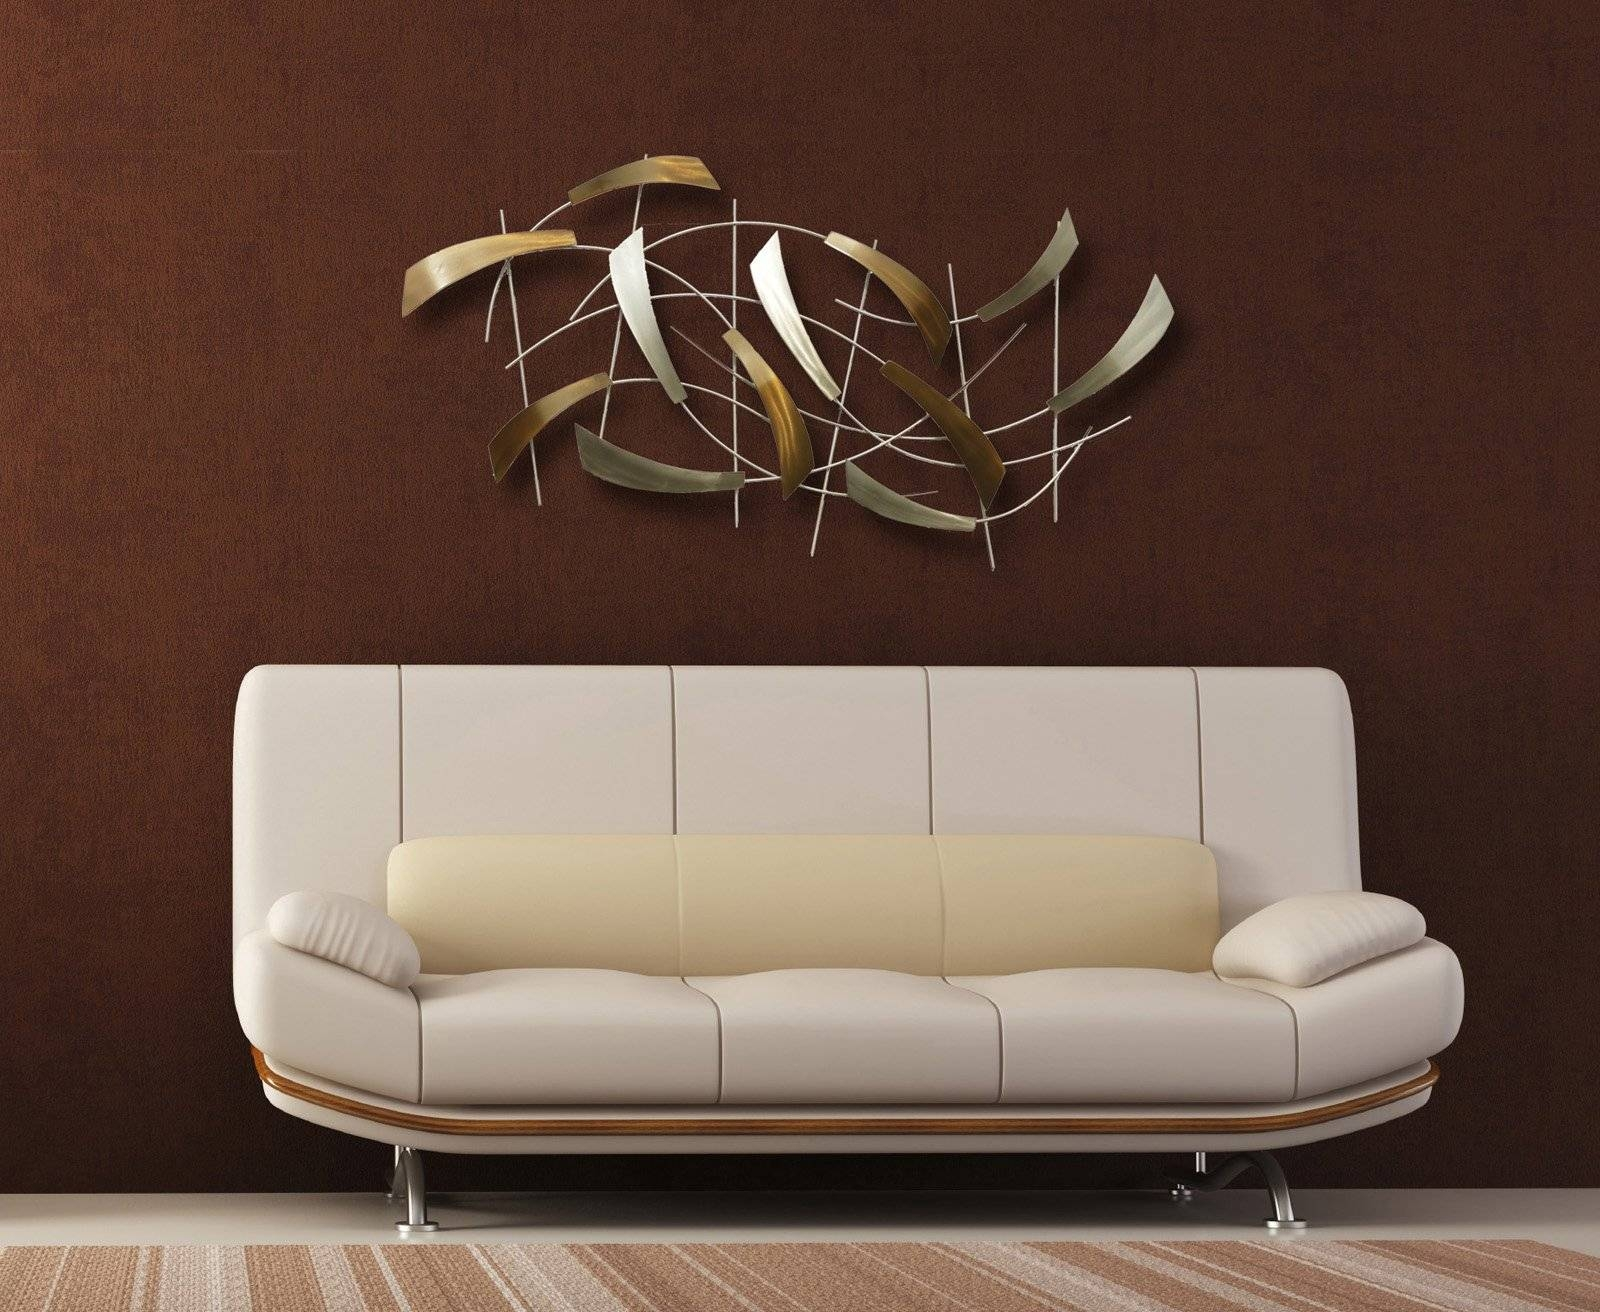 Nova Lighting 12652 Tidal Contemporary Wall Art / Wall Decor Nv 12652 For Most Recently Released Nova Wall Art (View 9 of 20)